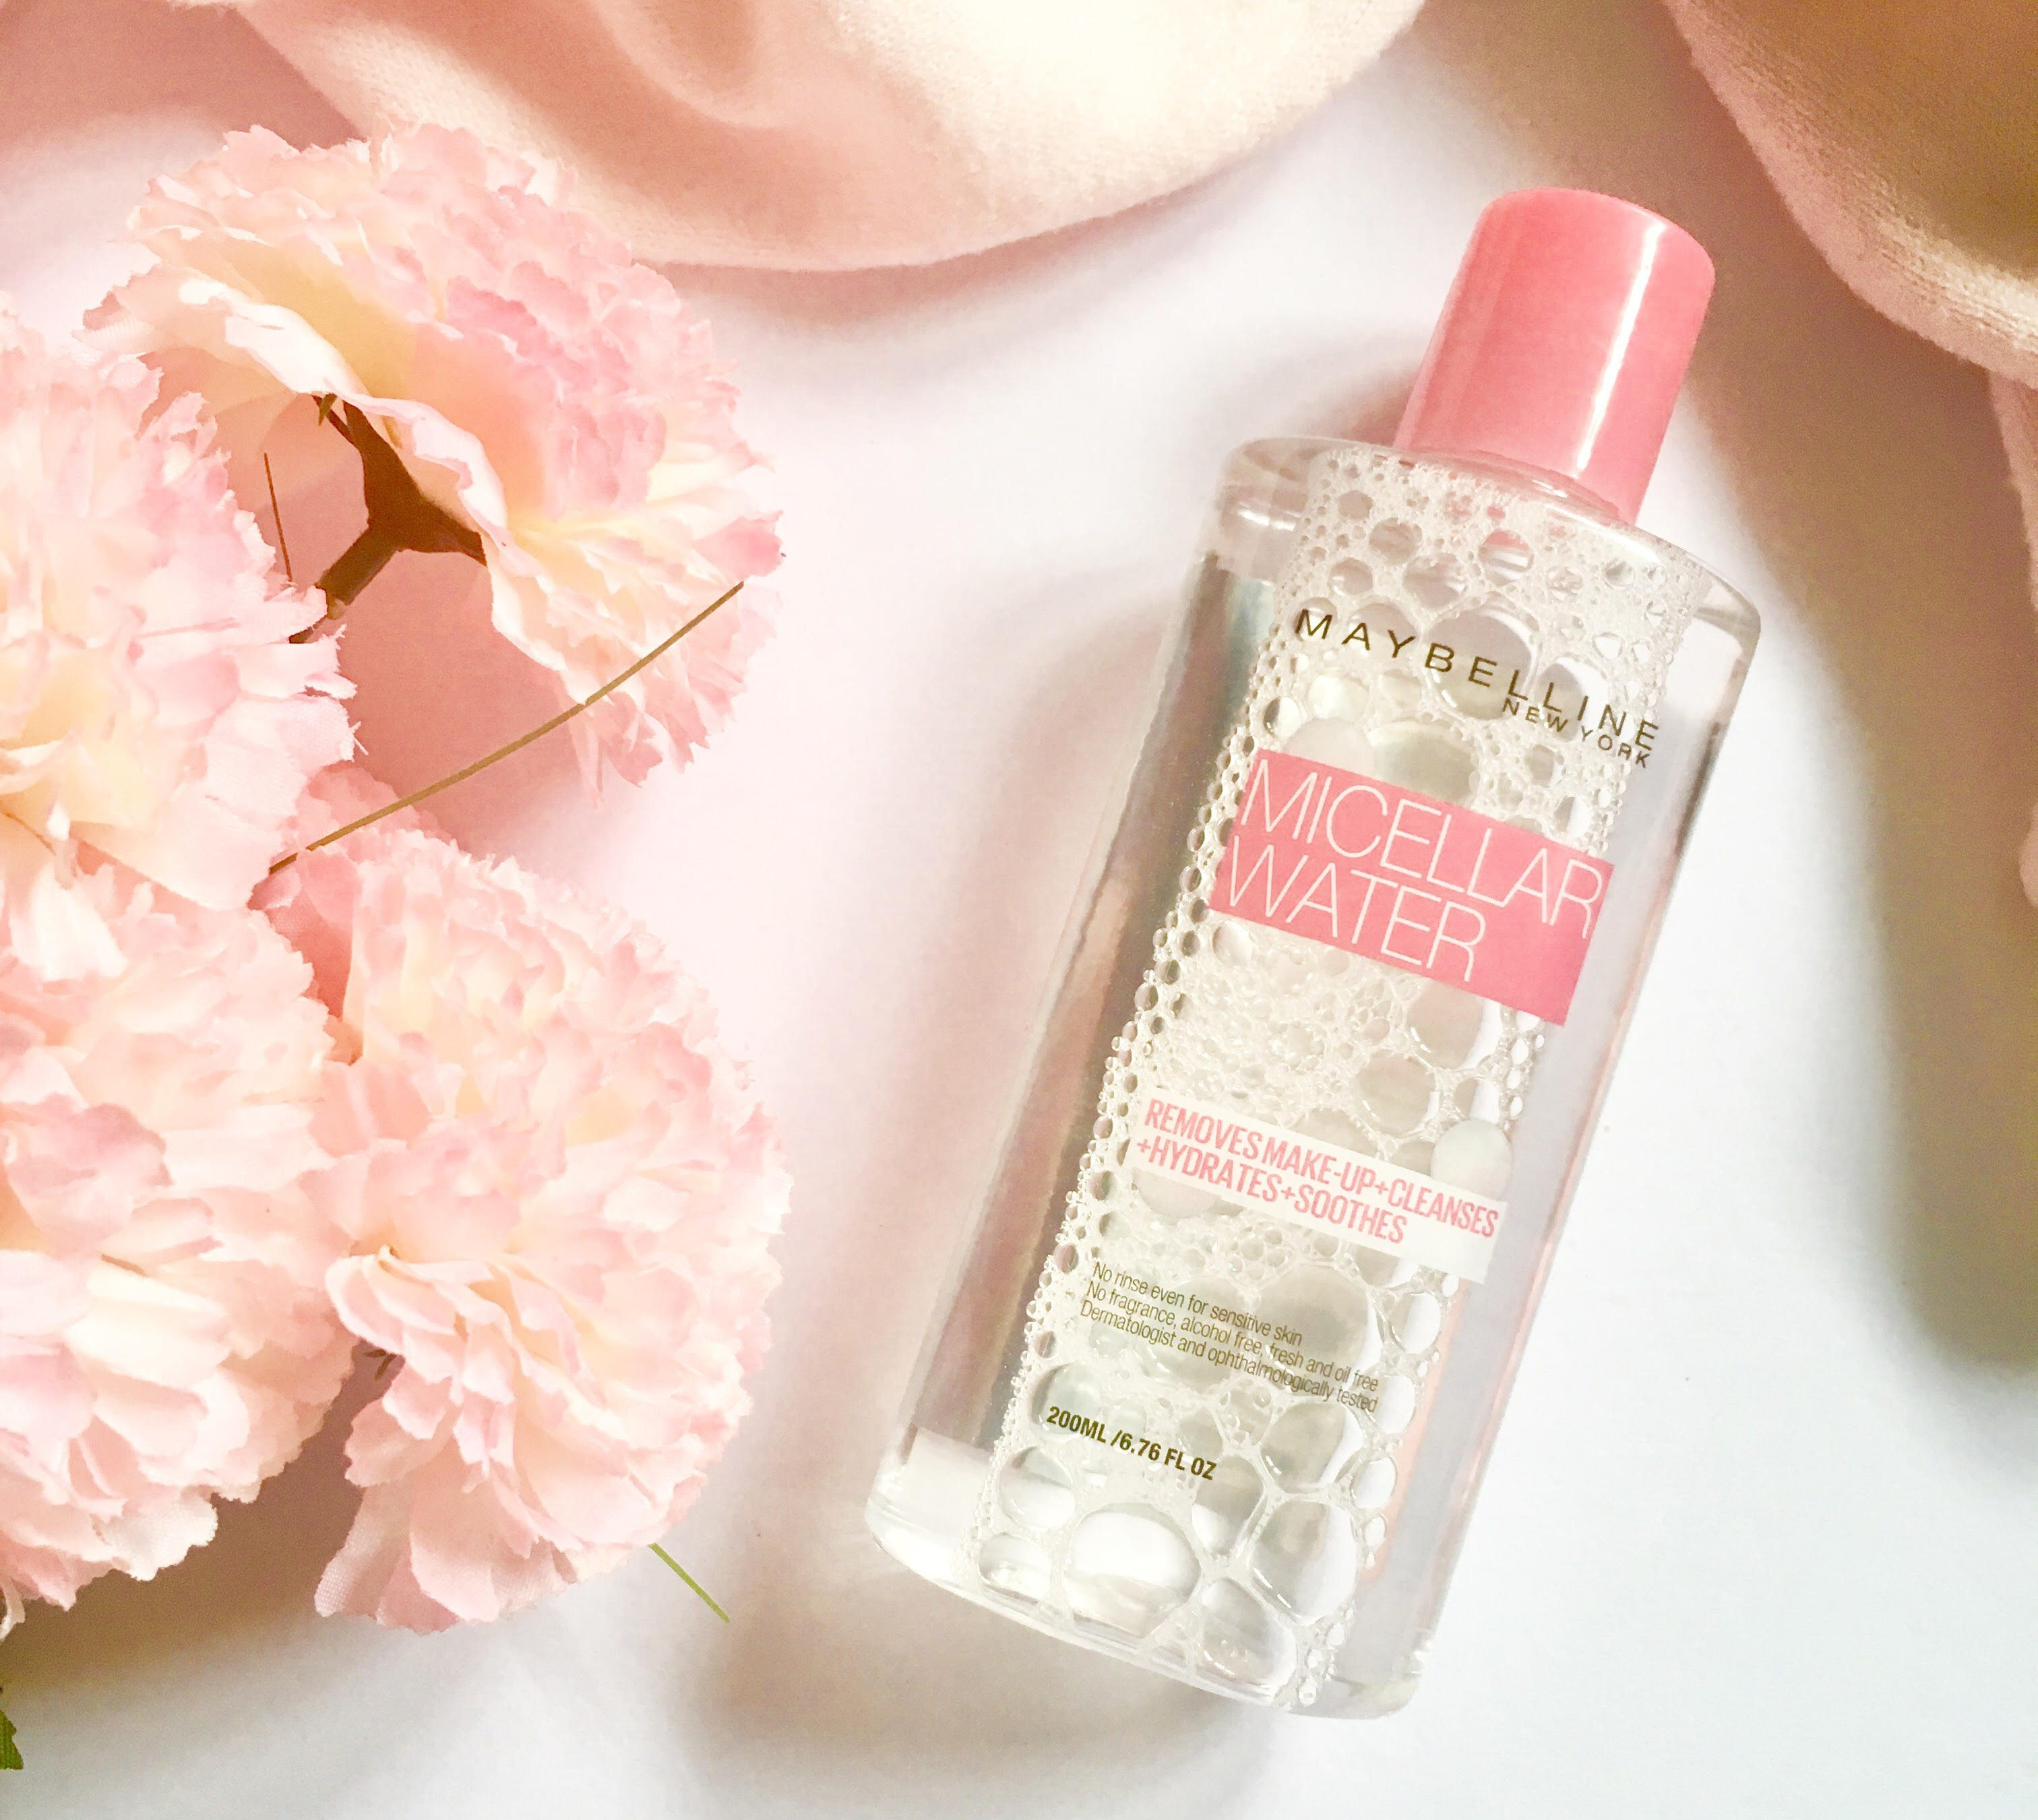 maybelline-micellar-water-review-price-philippines